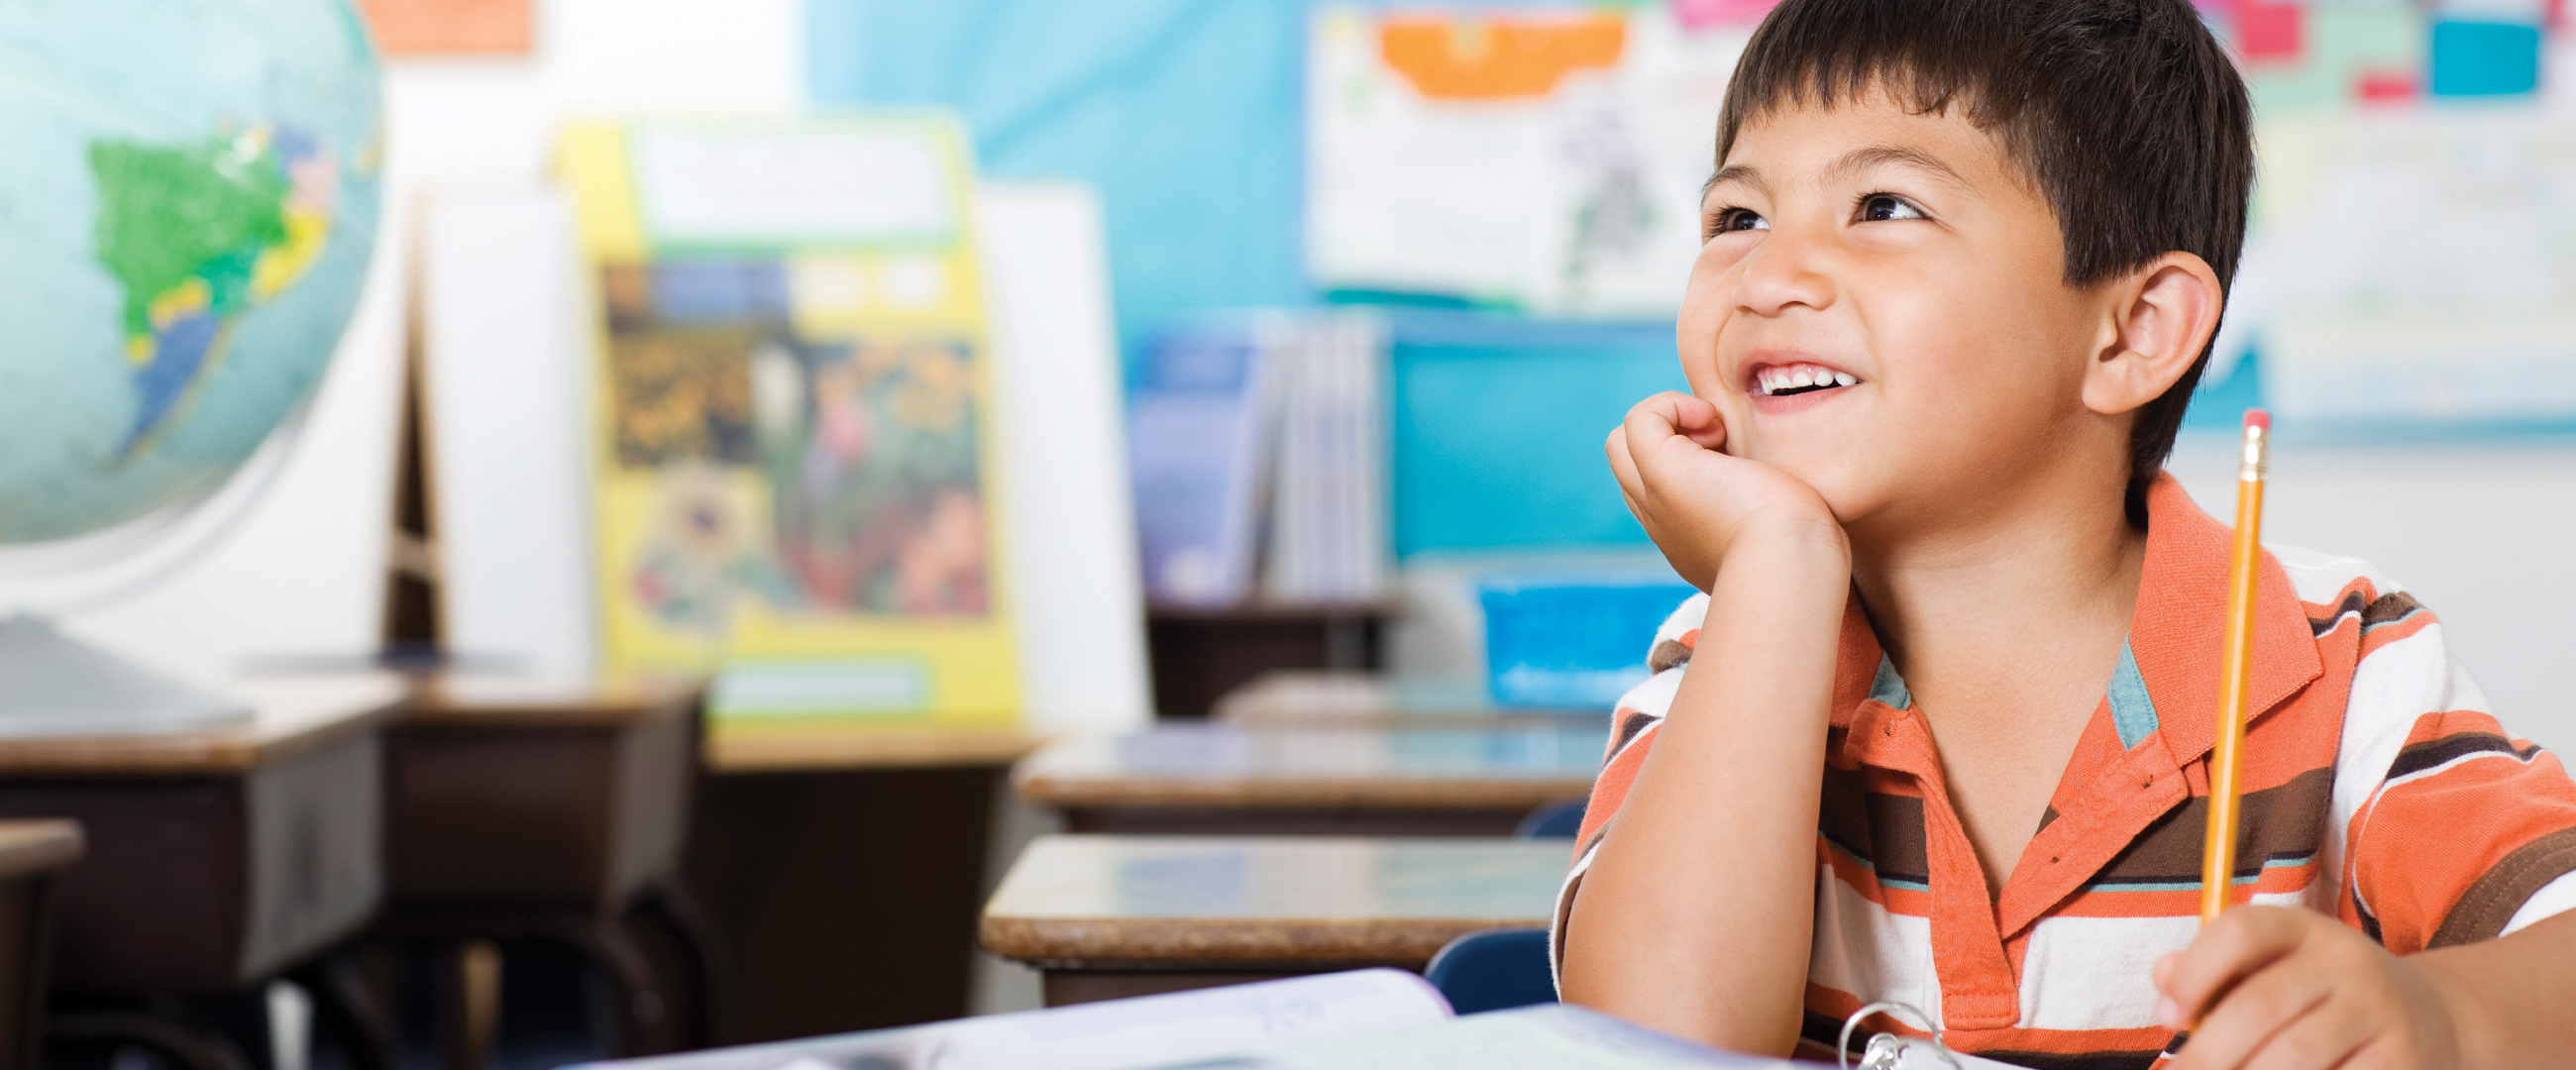 young smiling boy in classroom